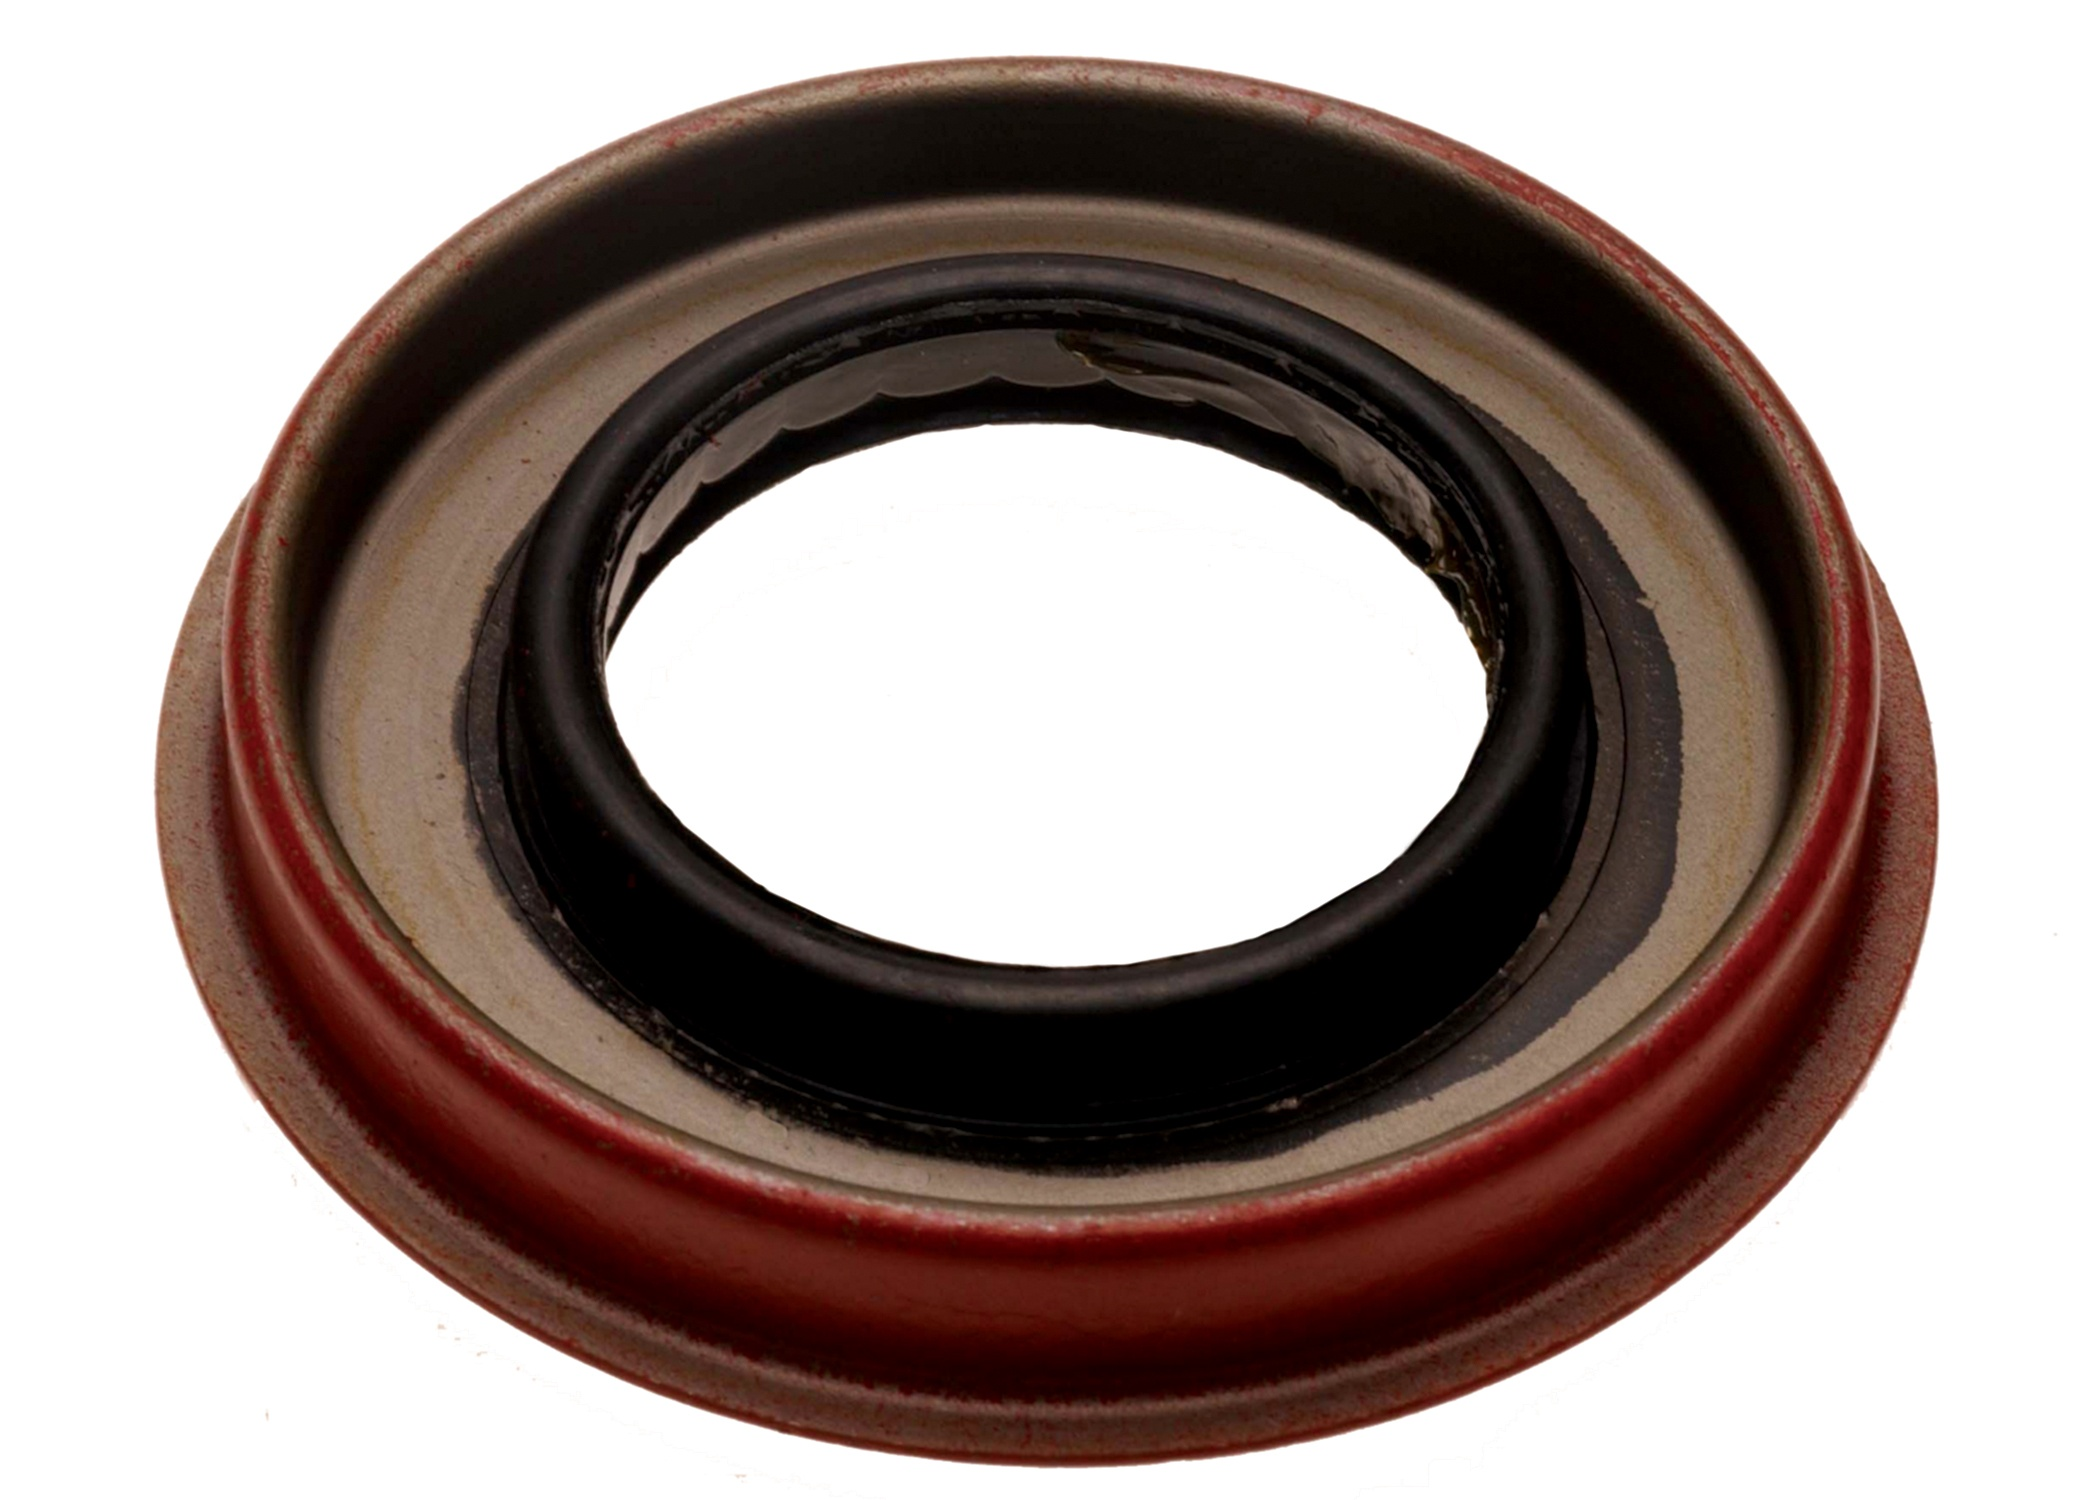 ACDELCO OE SERVICE CANADA - A/Trans Fluid Pressure Test Hole Plug Seal (O-Ring) - DCG 8677554